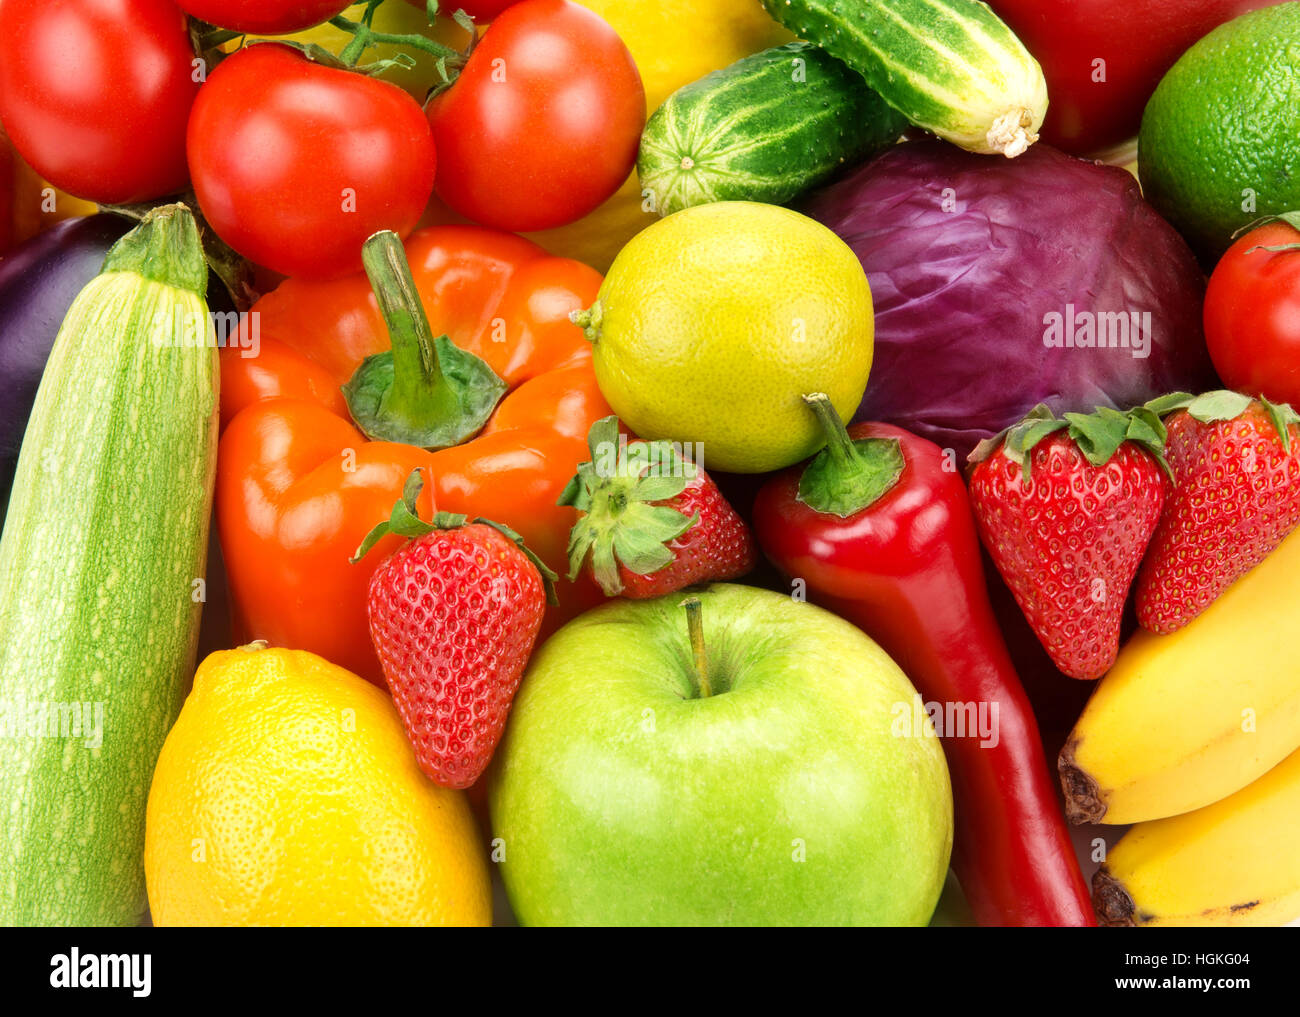 bright background of different fruits and vegetables - Stock Image